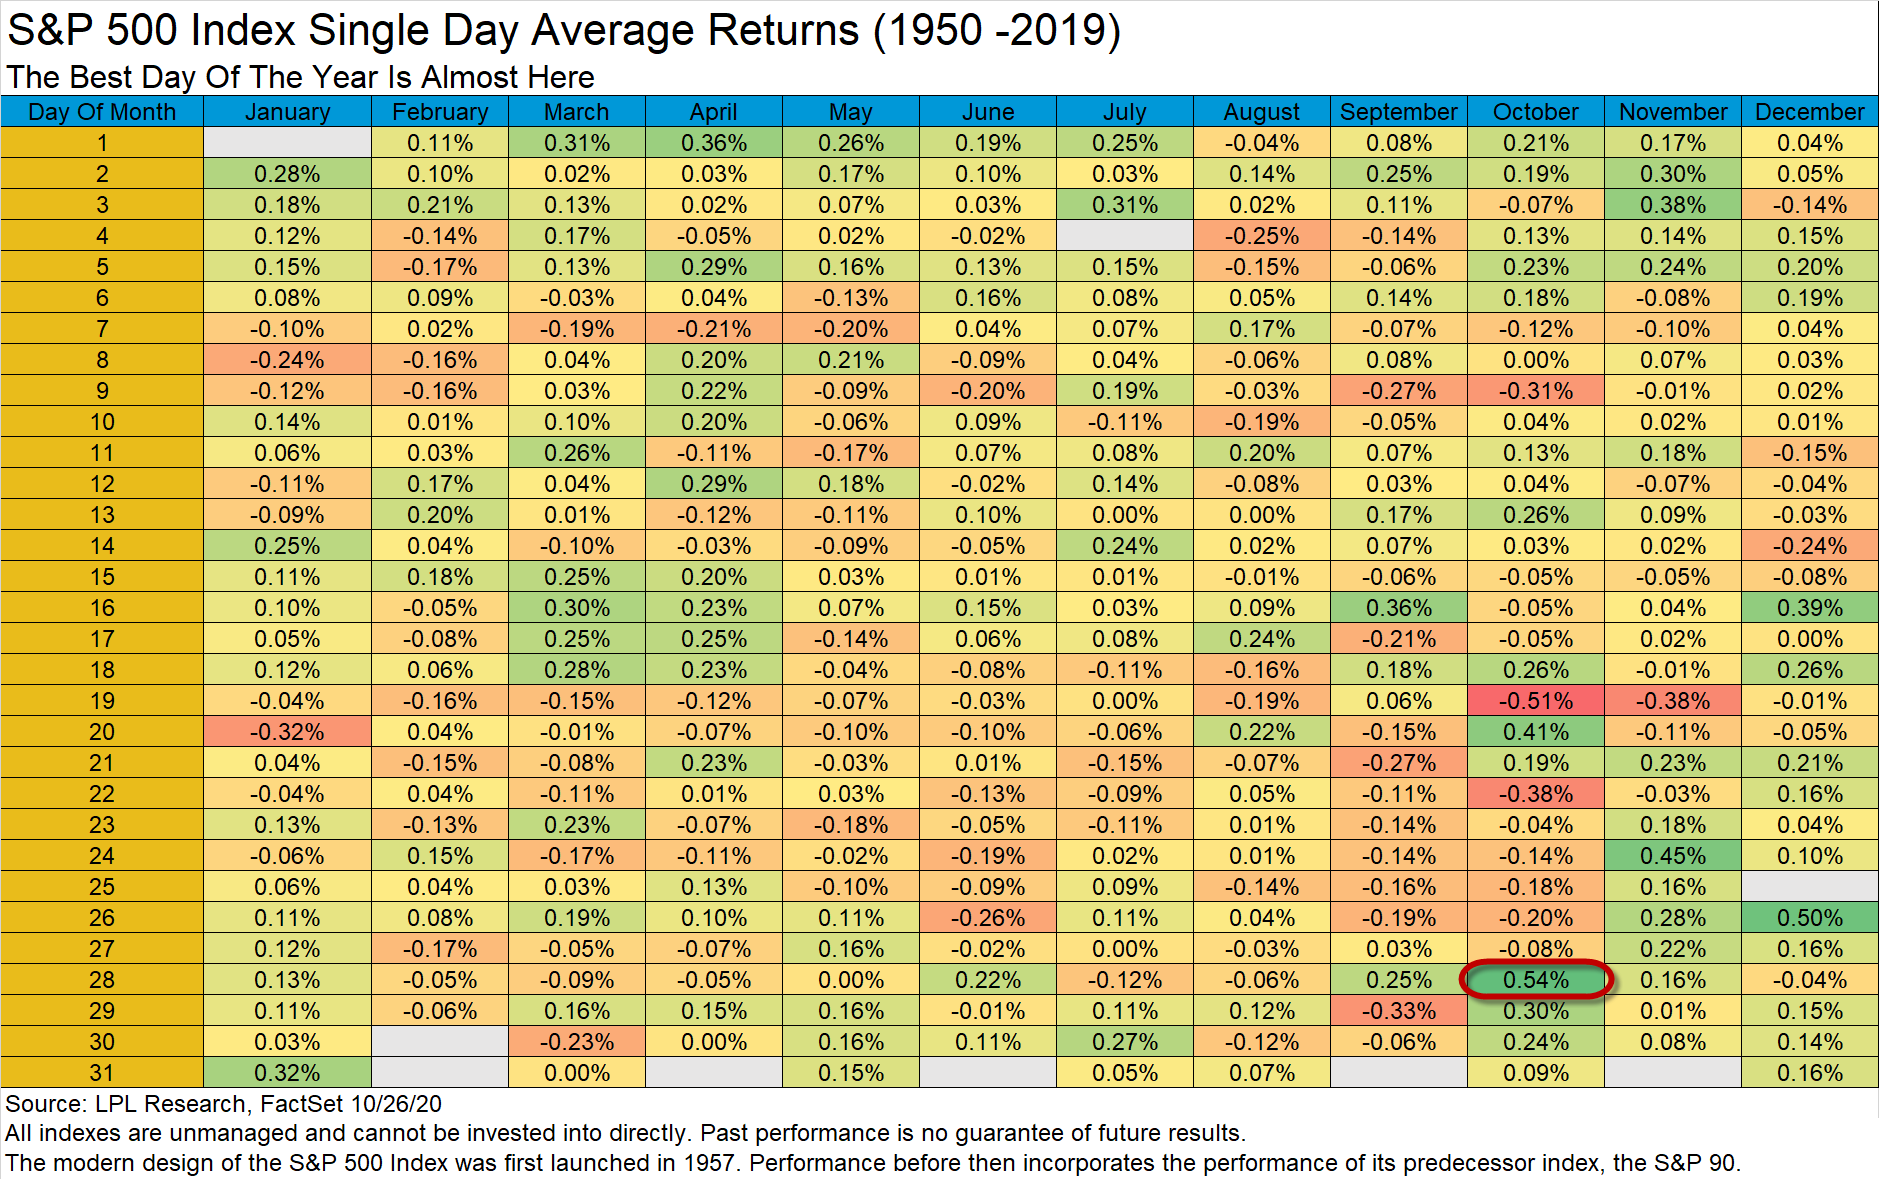 s and p index single day average returns form 1950 to 2019